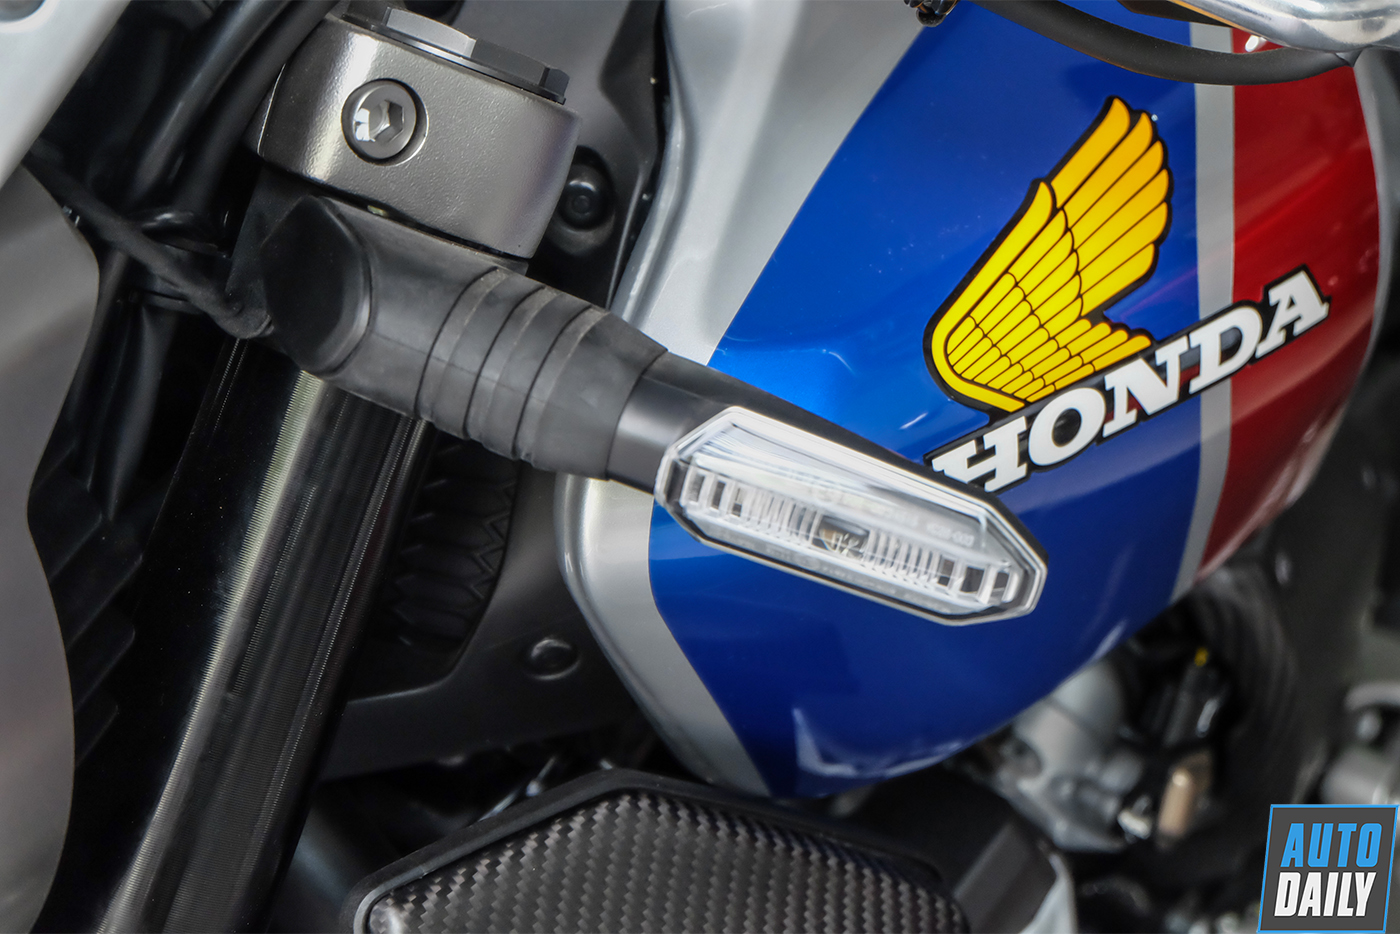 honda-cb1000r-plus-limited-edition-2019-17.jpg